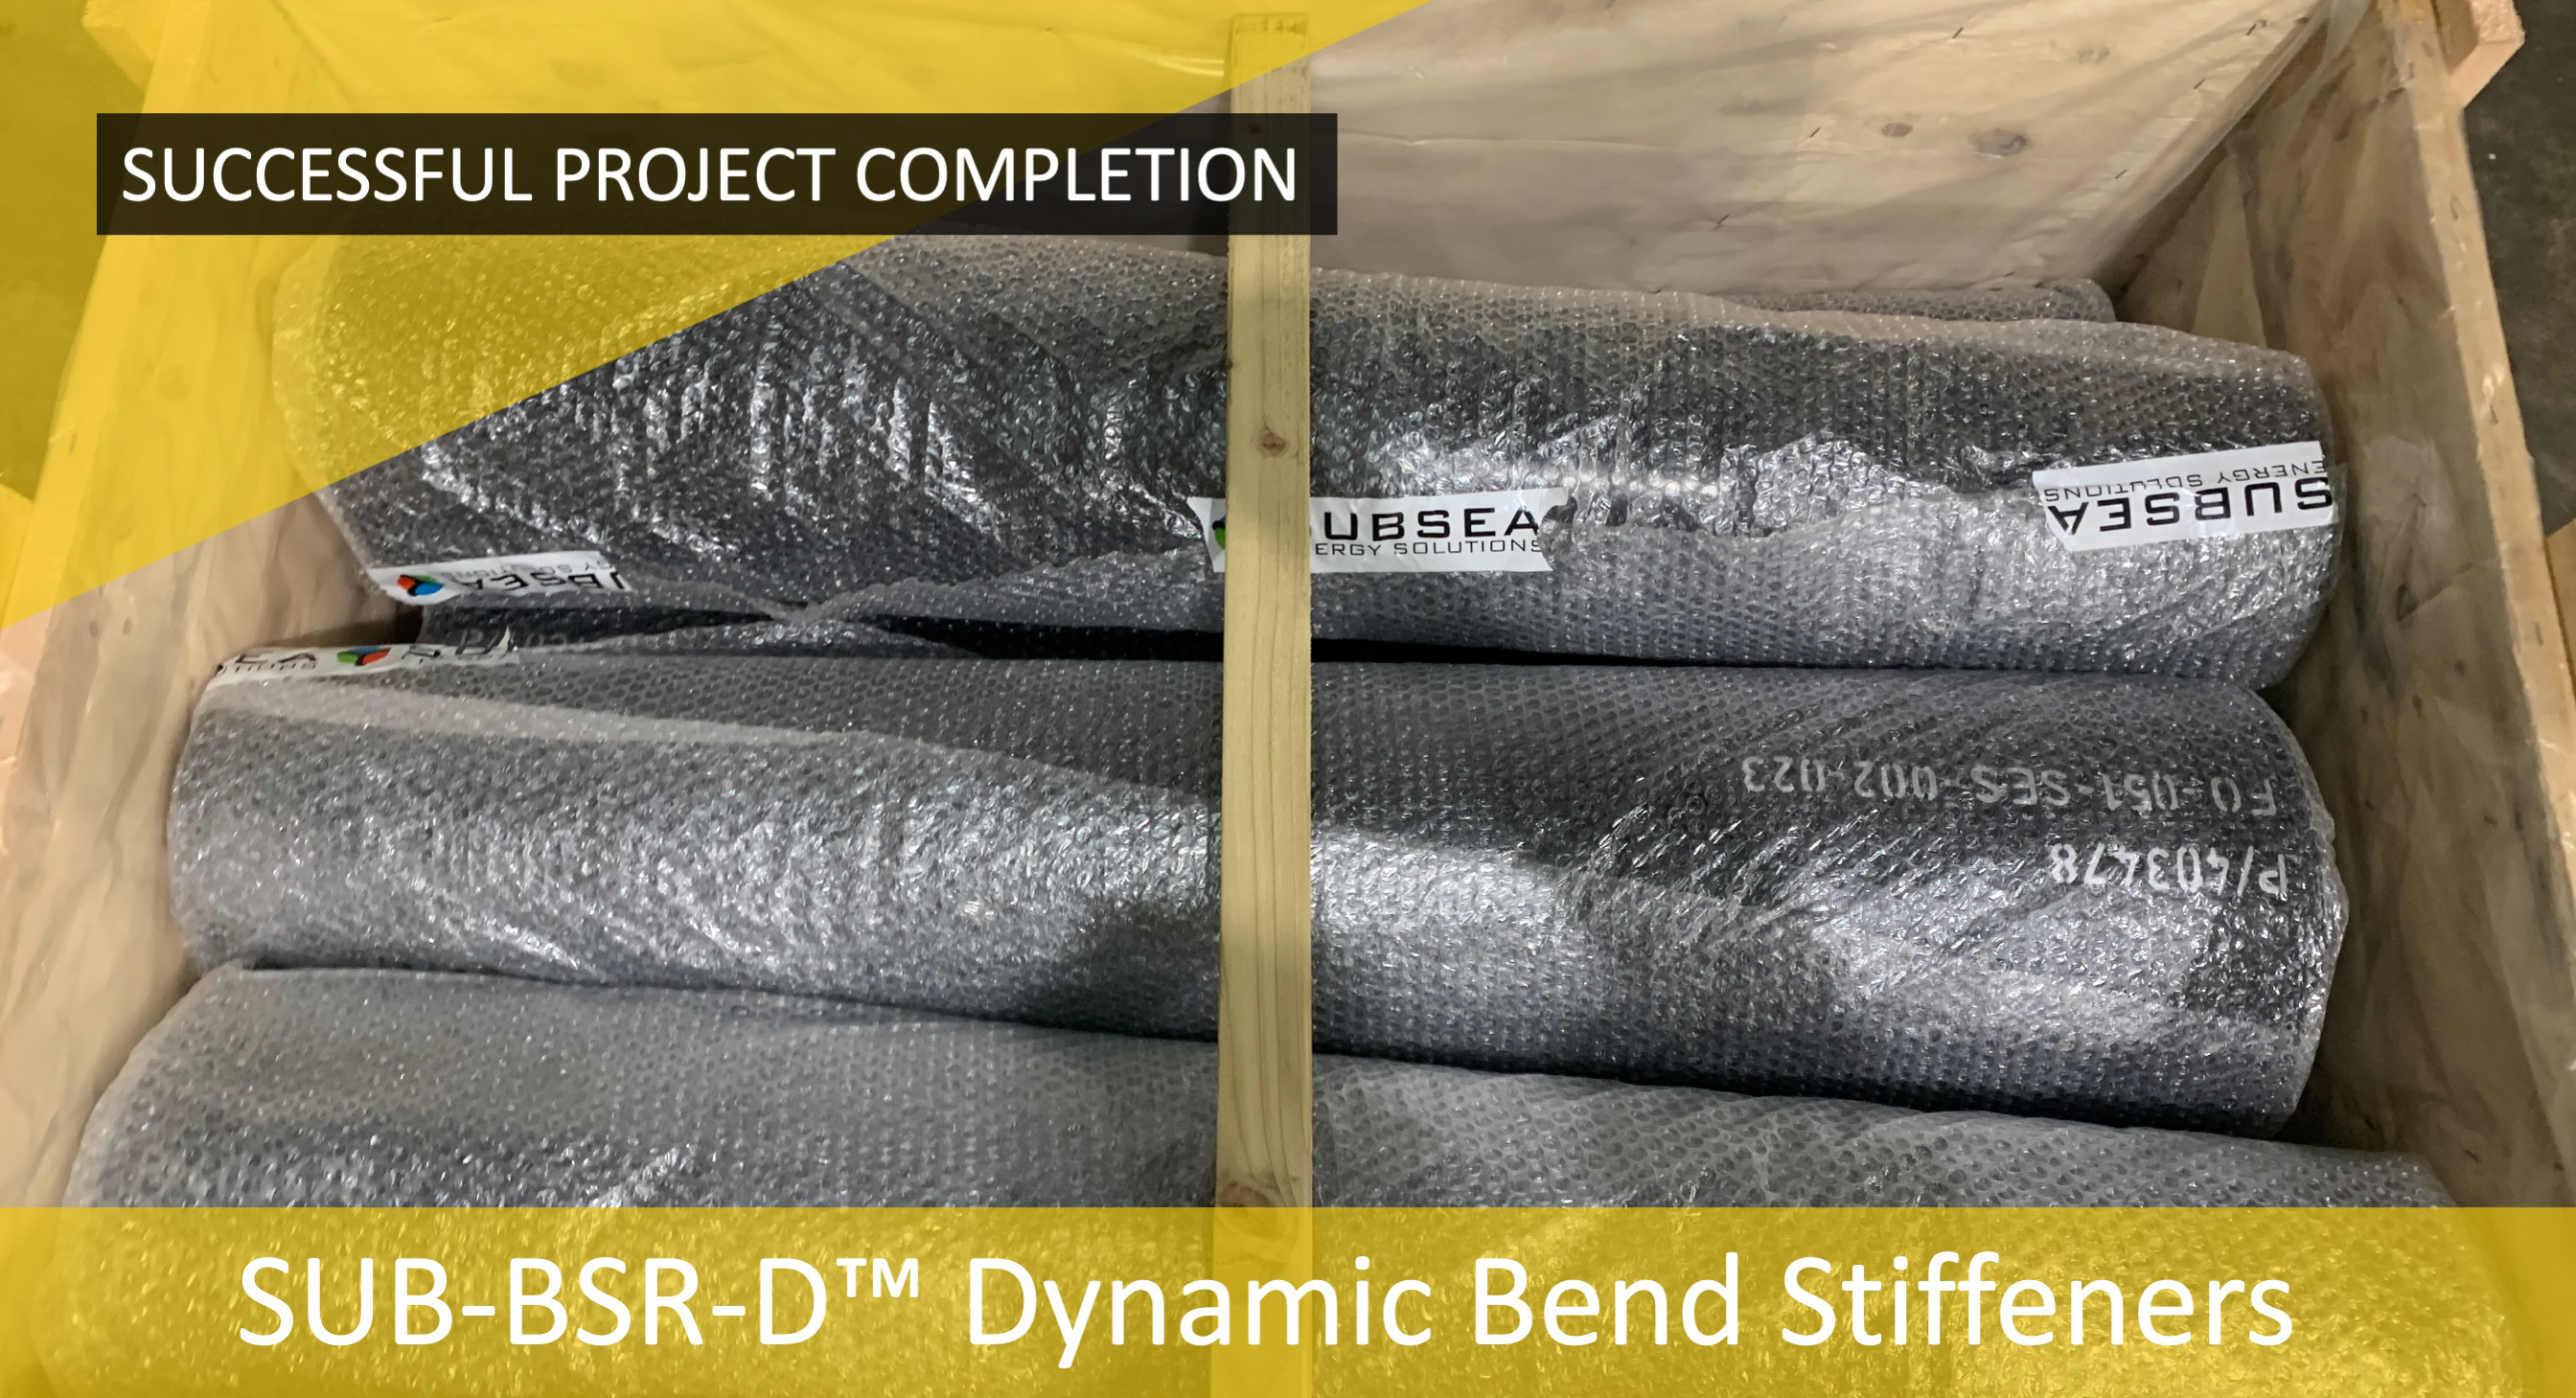 SES complete SUB-S-BSR™ Static Bend Stiffener project for an important and prestigious client